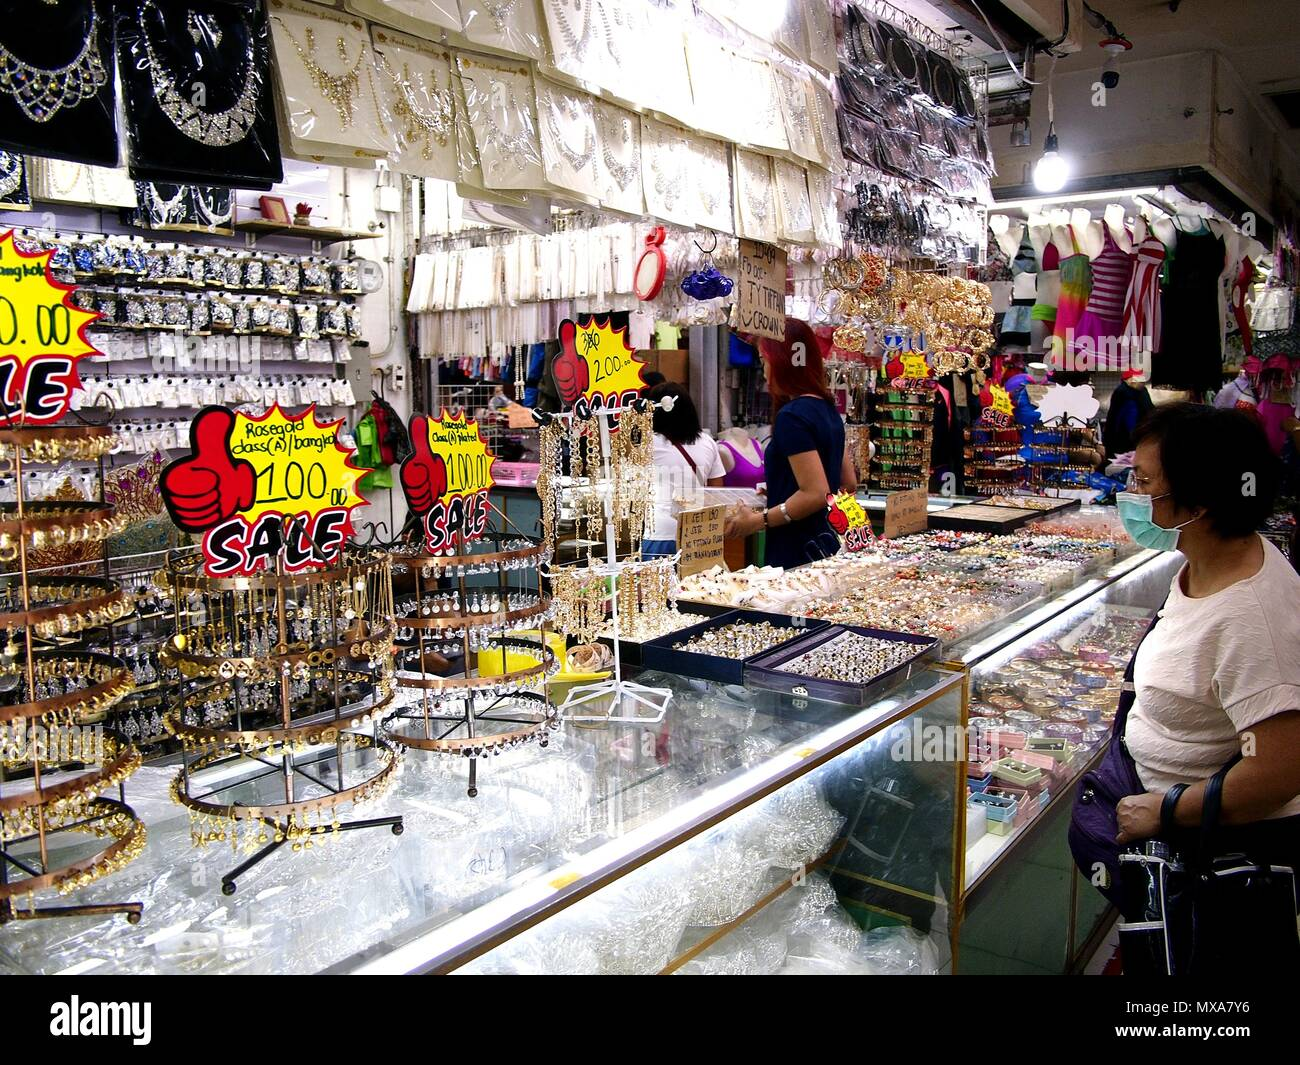 943bc8ce7 DIVISORIA, MANILA CITY, PHILIPPINES - MAY 14, 2018: Assorted jewelry and  fashion accessories on display at a bazaar stall inside a big shopping mall.